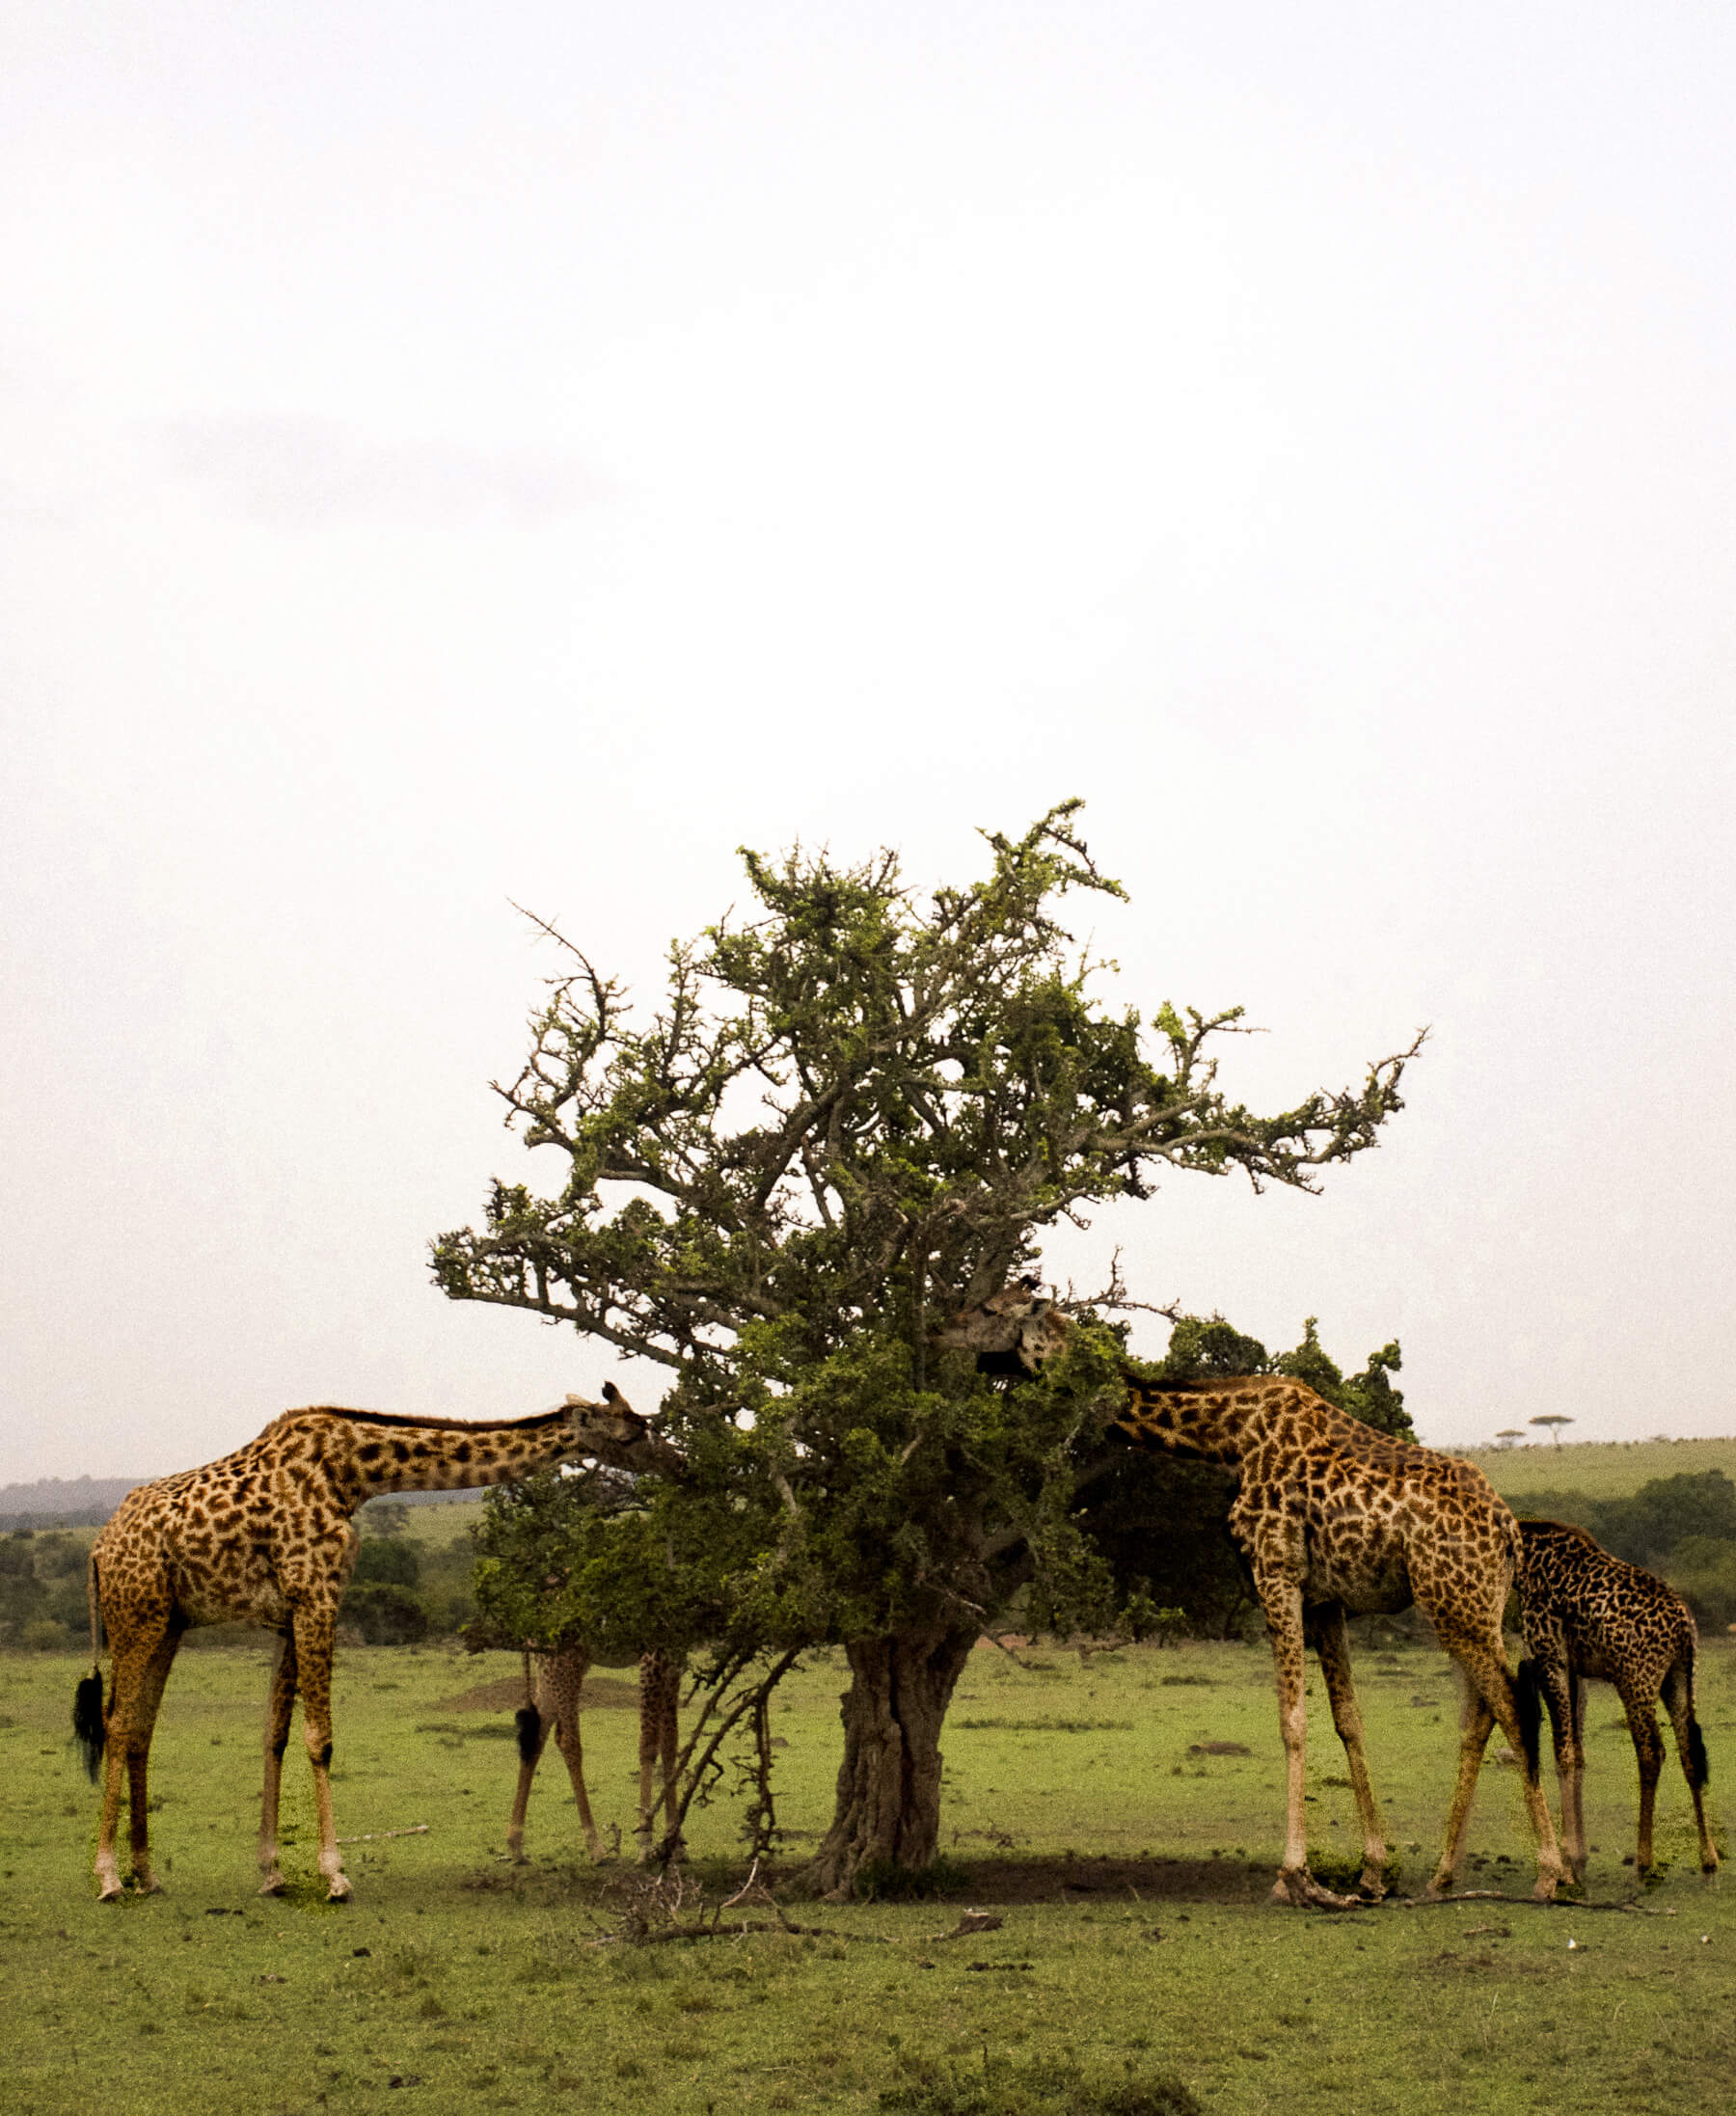 A group of 4 female giraffes eating a tree